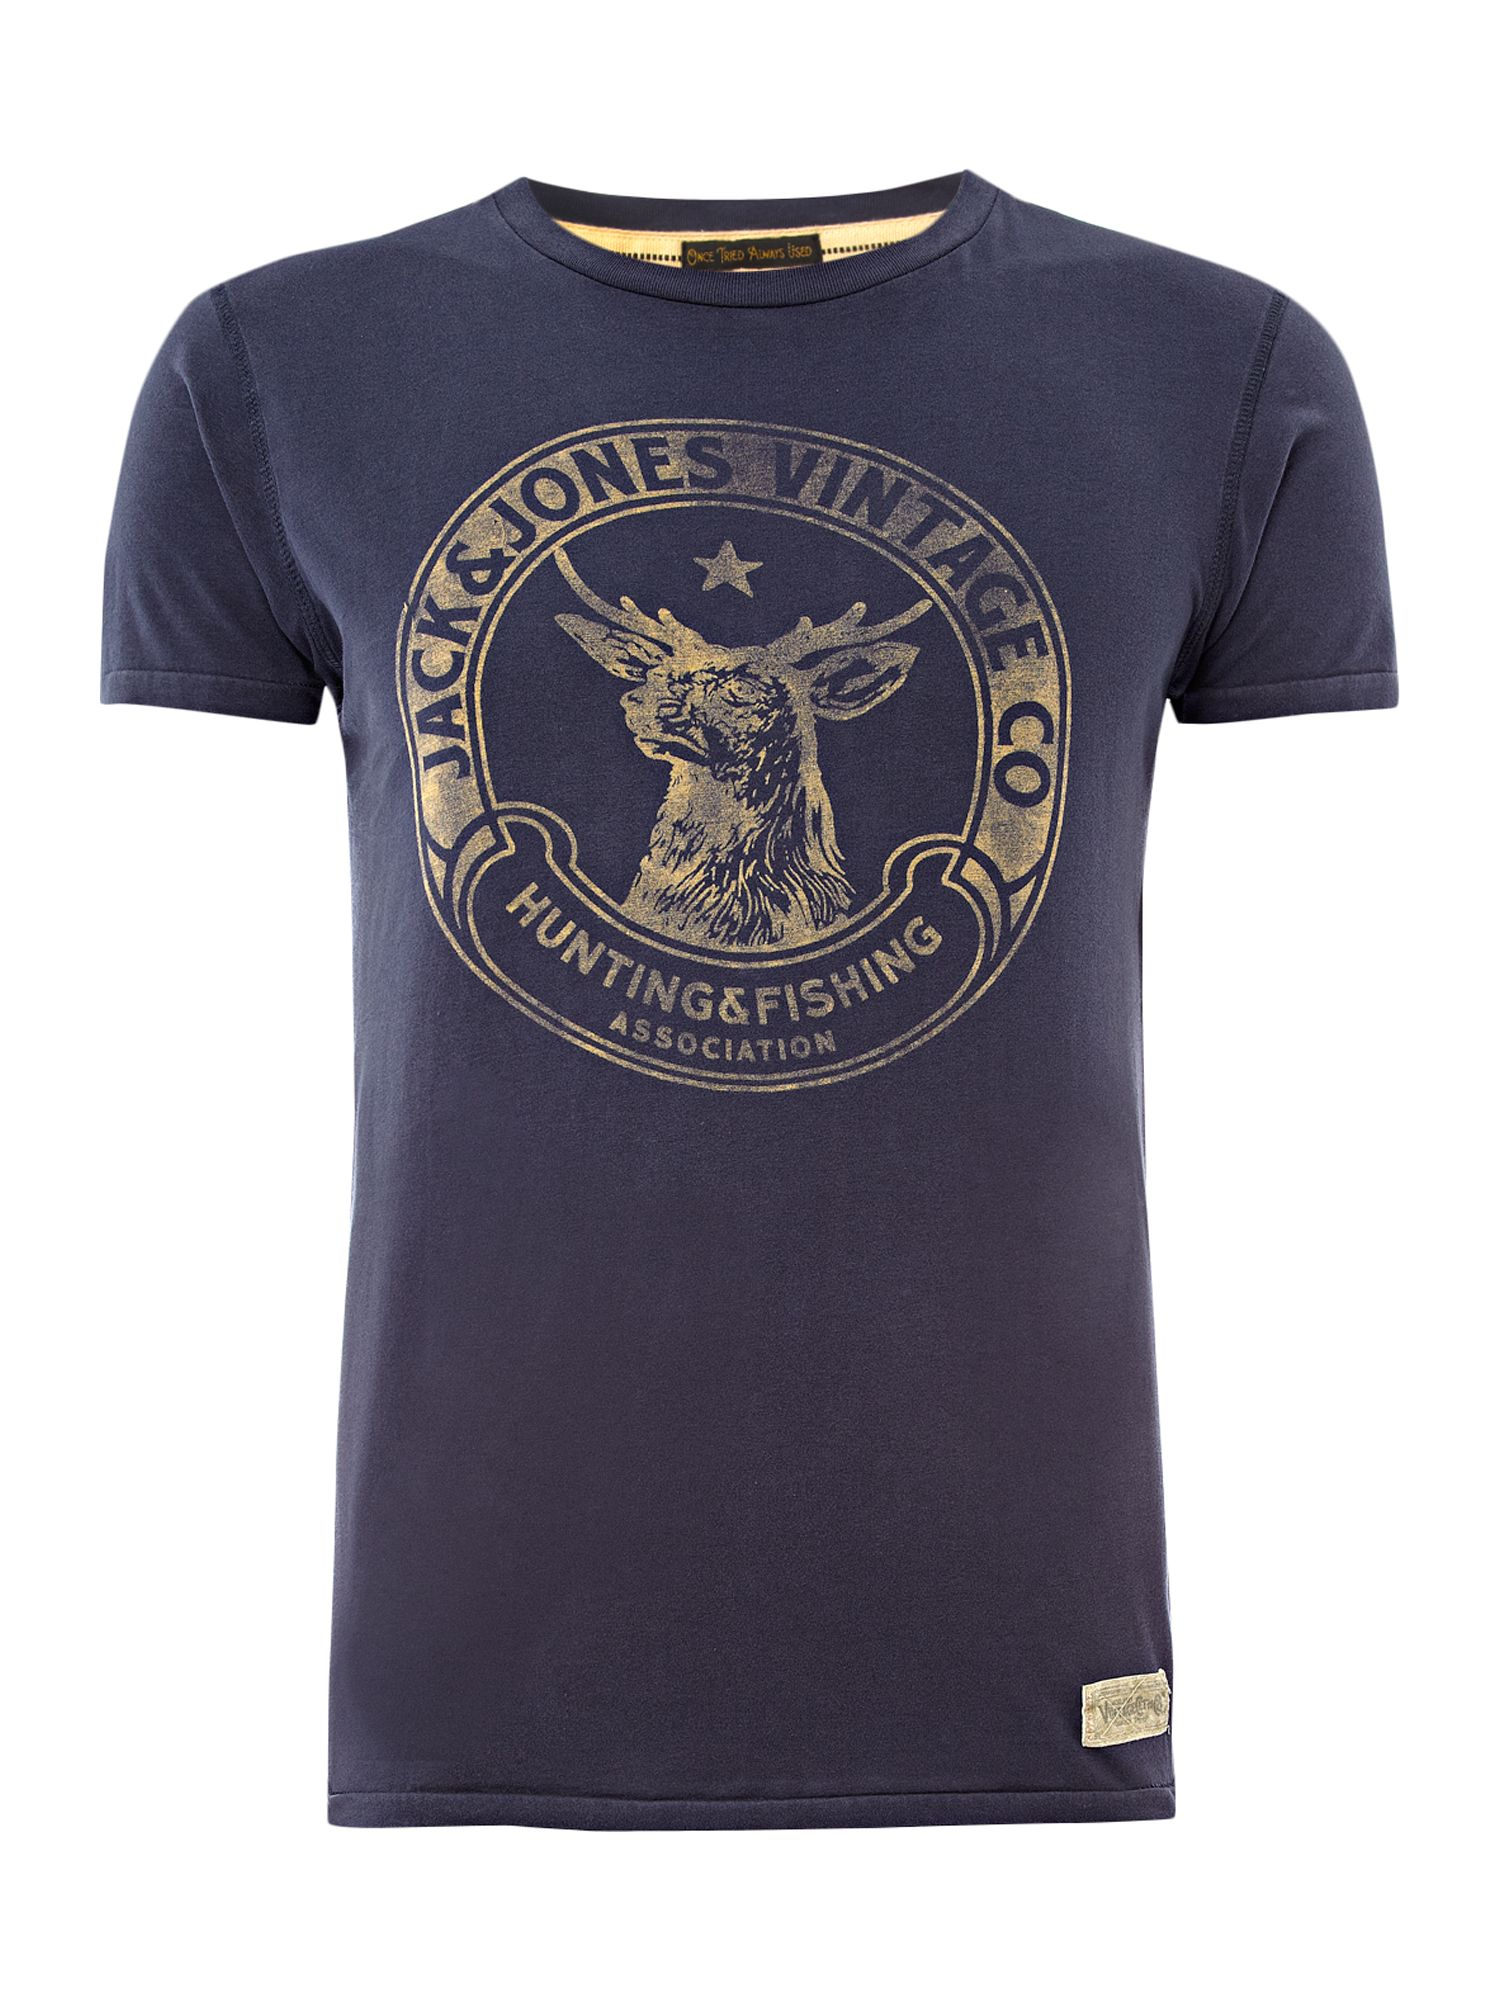 Jack & Jones Mens Jack and Jones Hunting logo t-shirt, product image